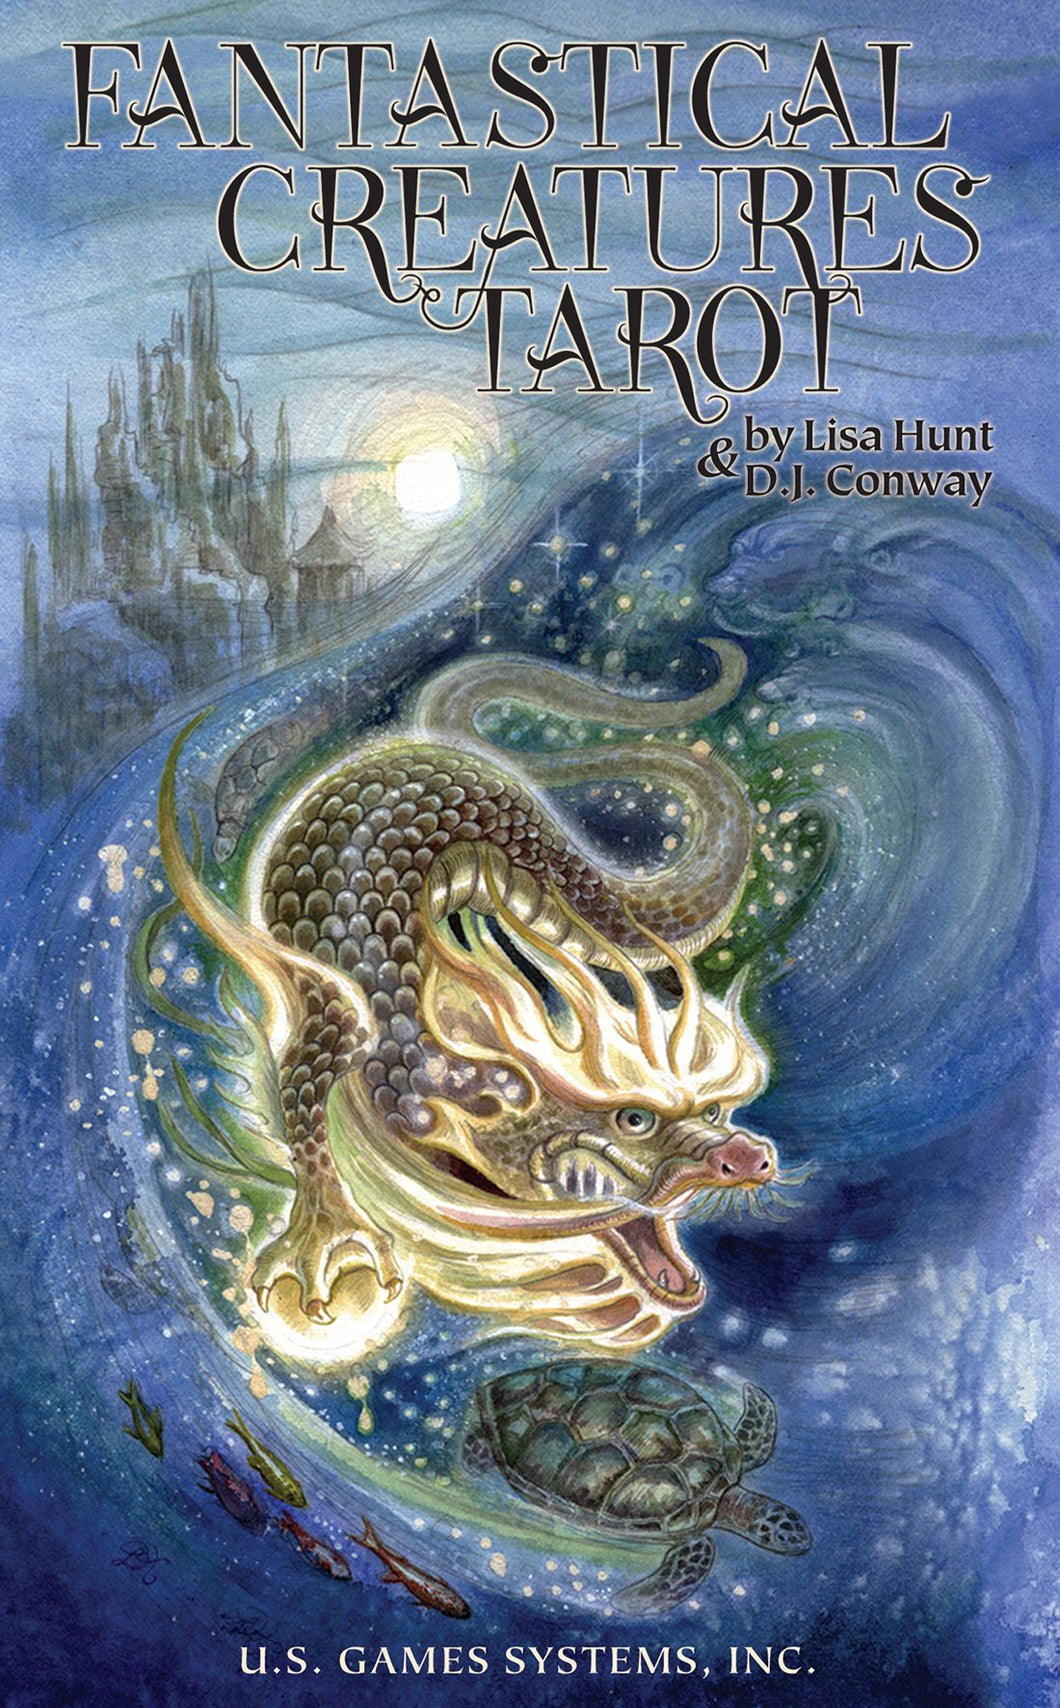 Fantastical Creatures Tarot Deck (Lisa Hunt & DJ Conway)